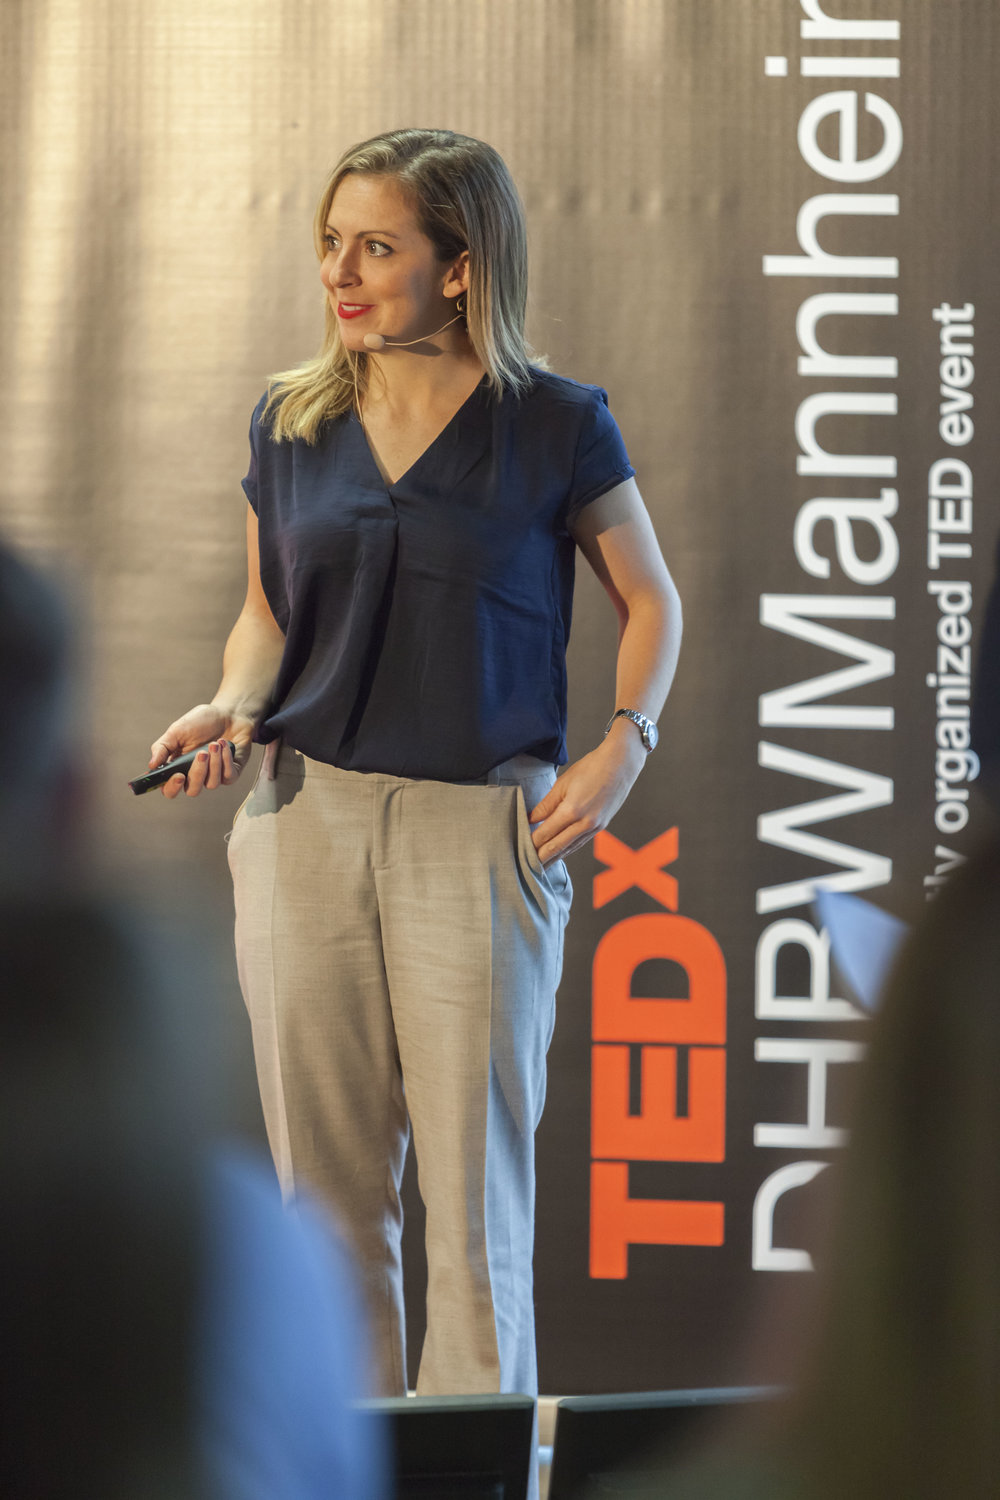 CASSANDRA SPEAKING AT TEDX DHBW MANNHEIM